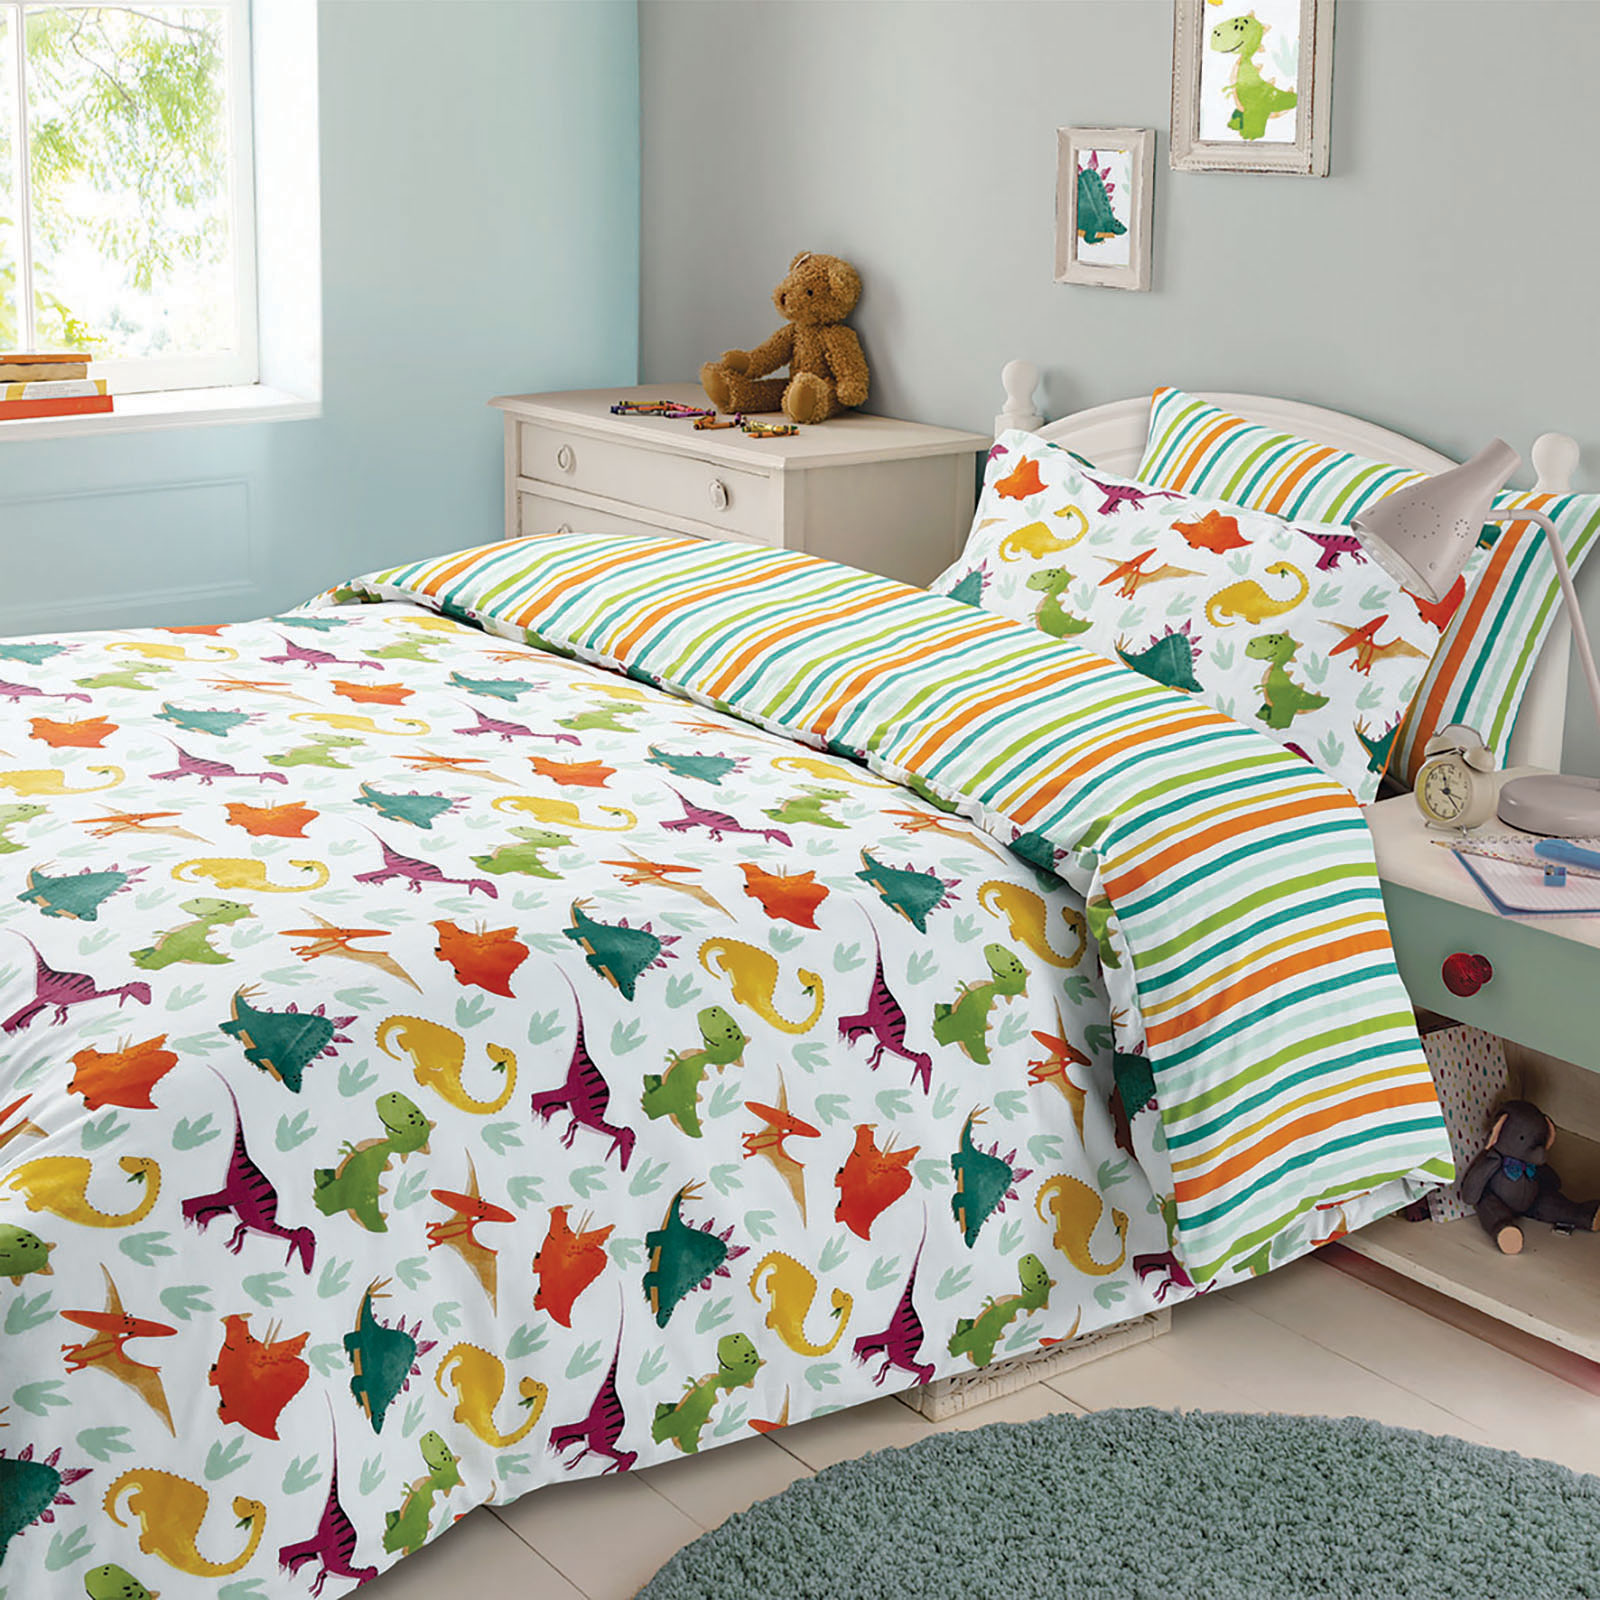 buy head bedsheets get cover boards covers best abu dhabi dubai in dubaiinteriors duvet ae acroos uae